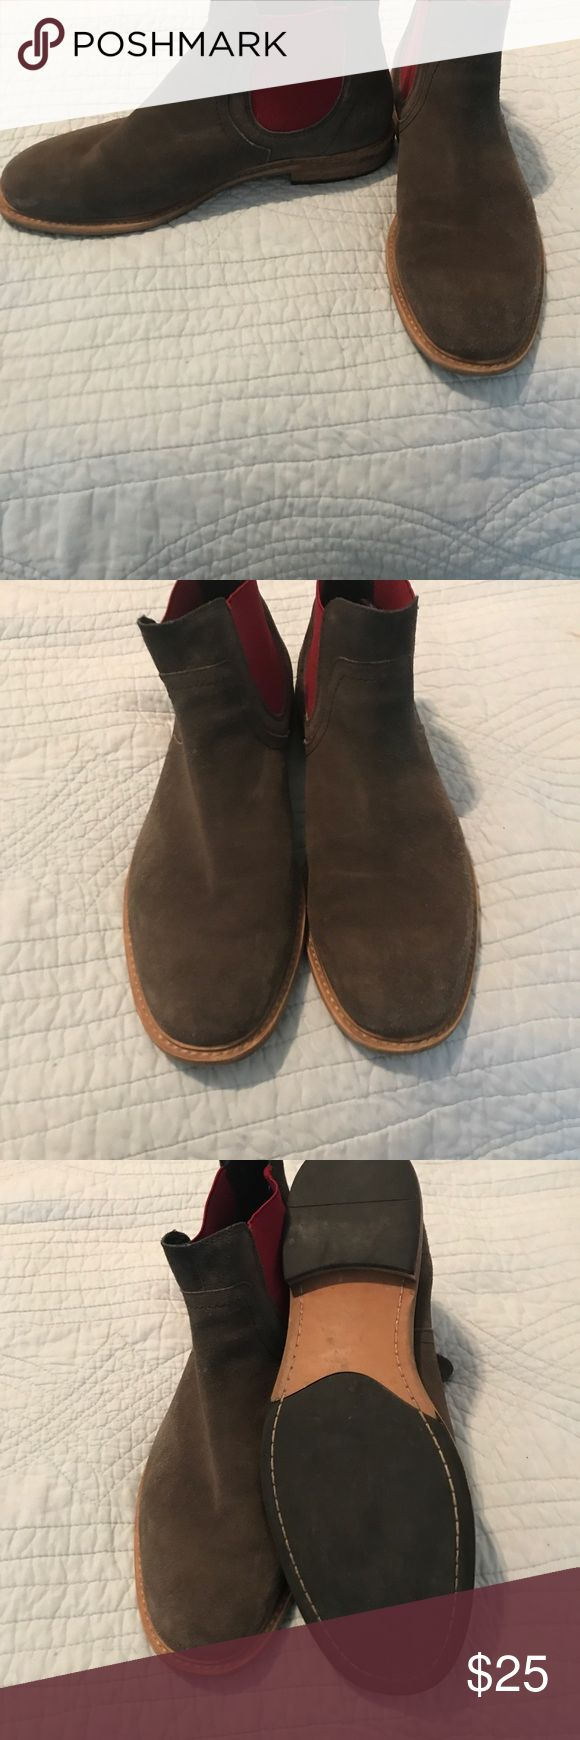 Men's pull on boots Brown suede with red detail total hip- he says comfortable! Barely worn . Great with jeans or casual slacks Shoes Boots